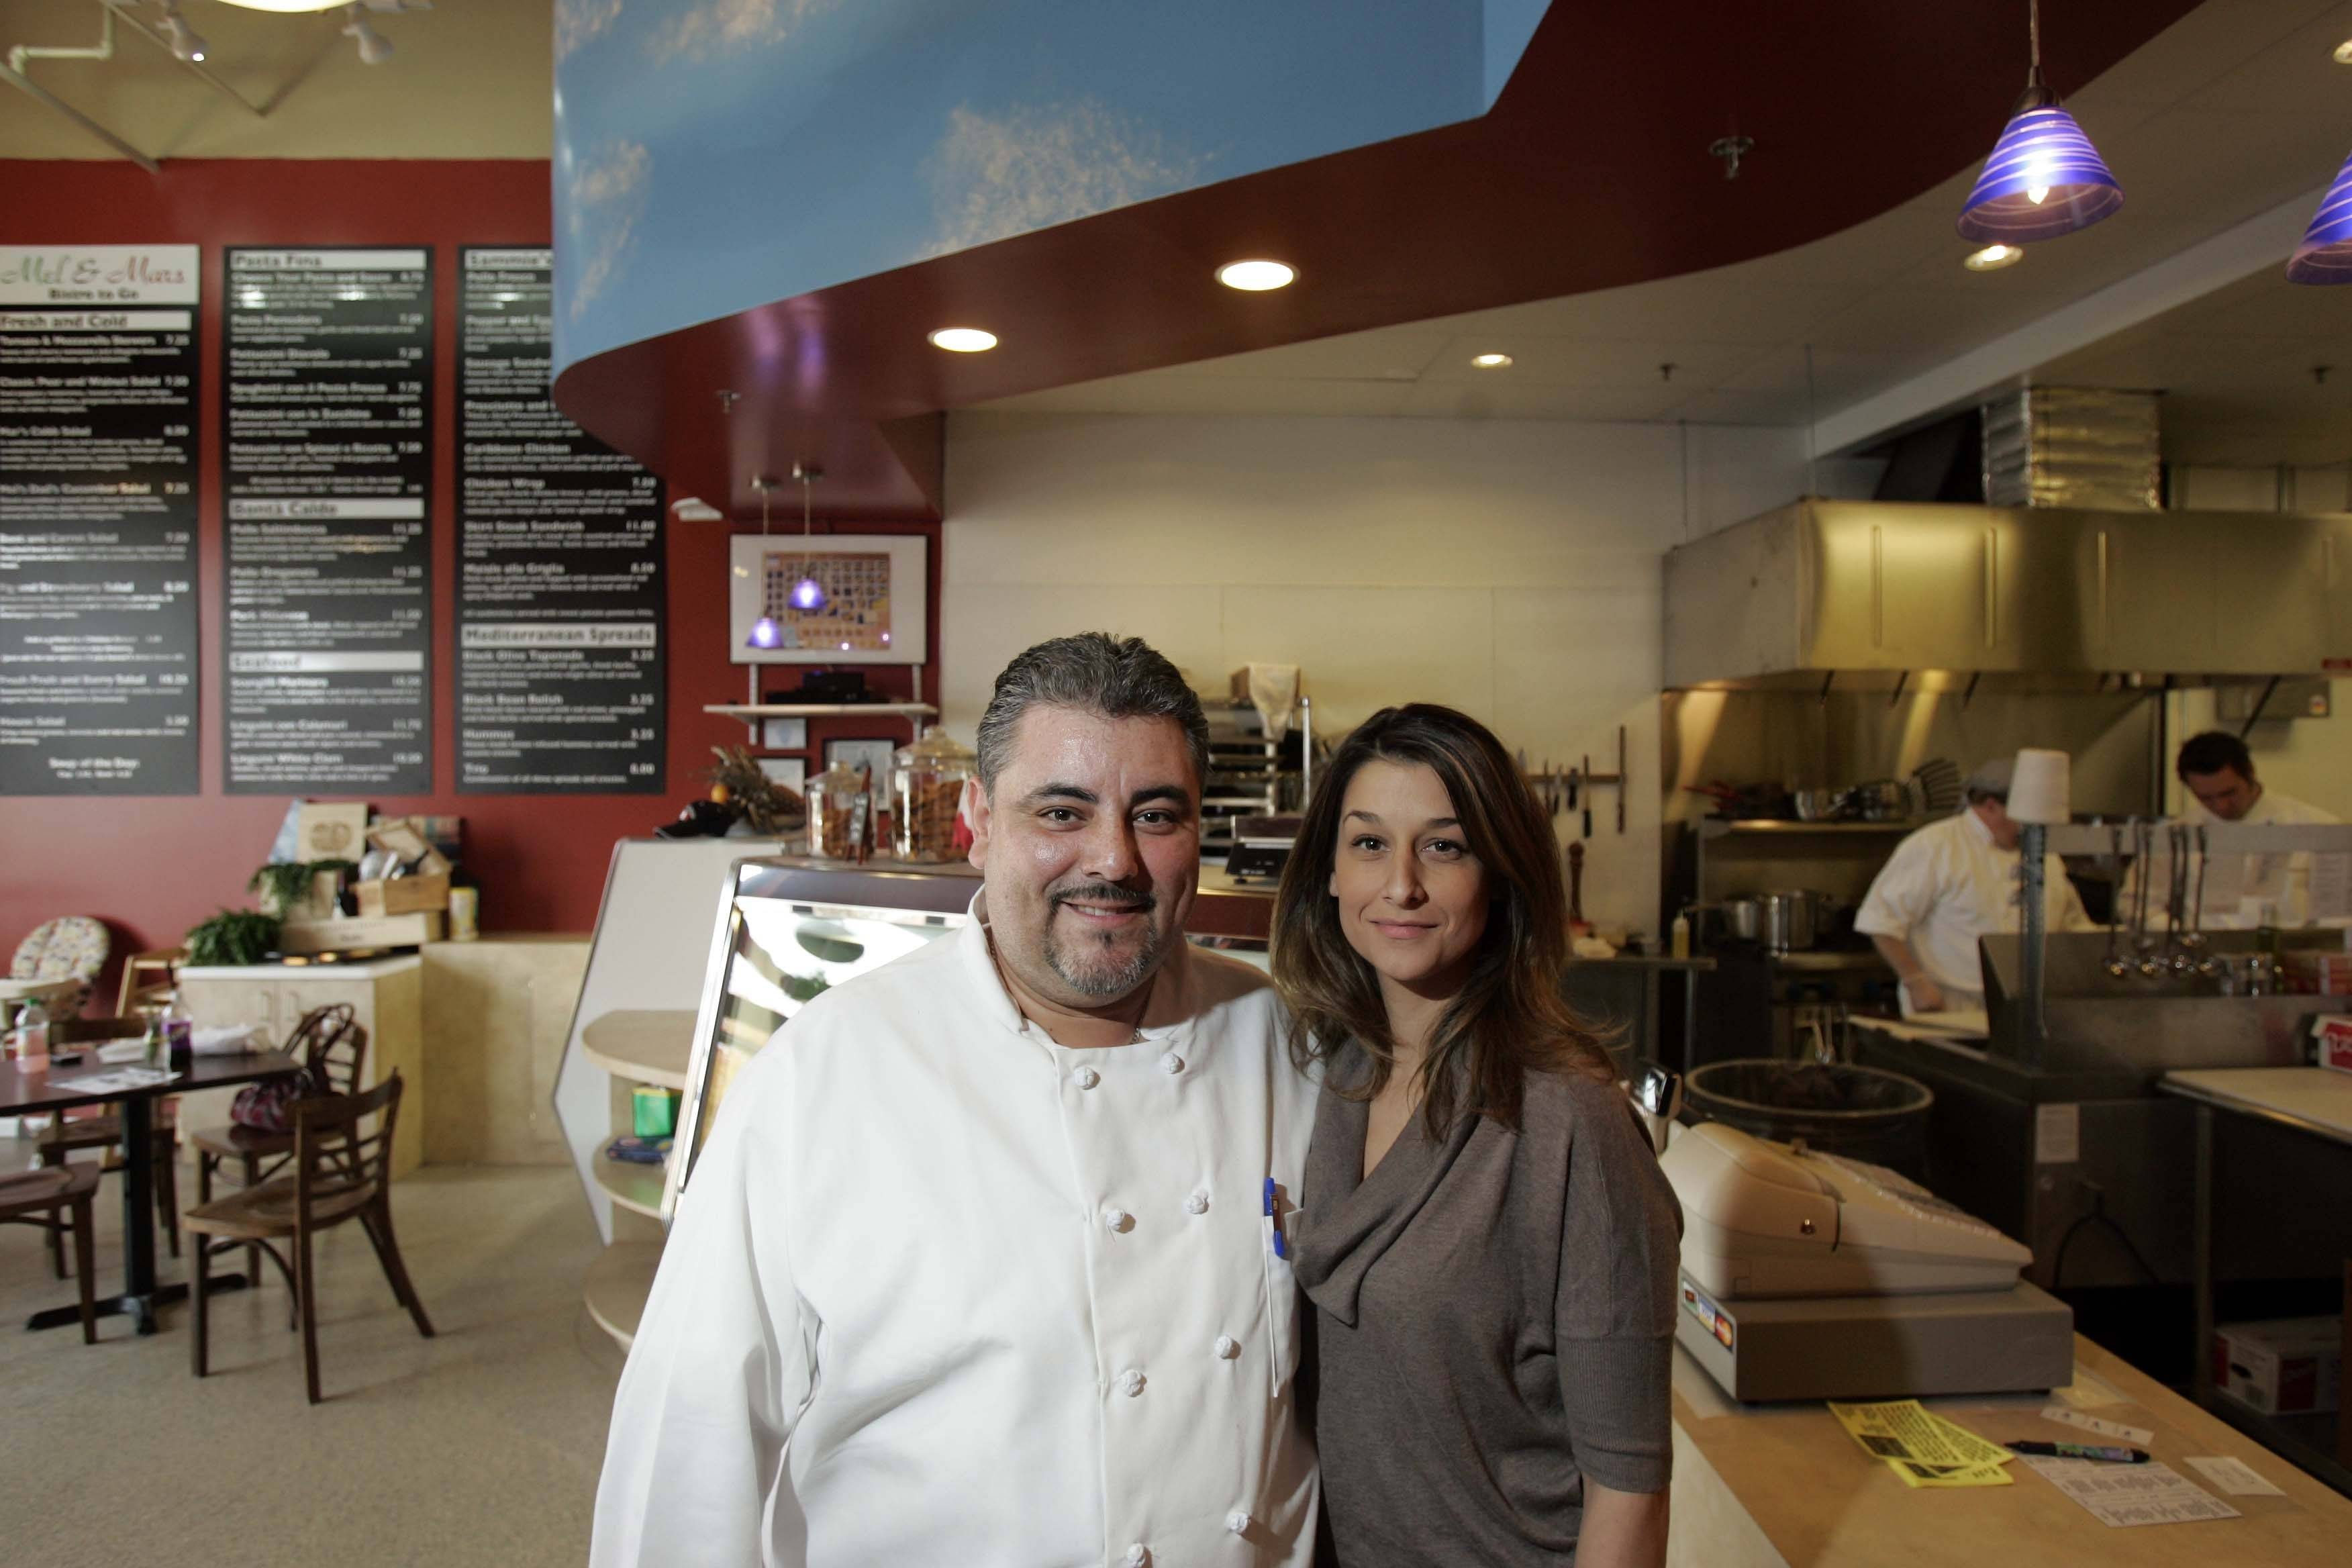 Mario and Melisa Arevalo recently opened Mel & Mar's Bistro in Algonquin. The restaurant, which is primarily carryout, features Italian specialties.